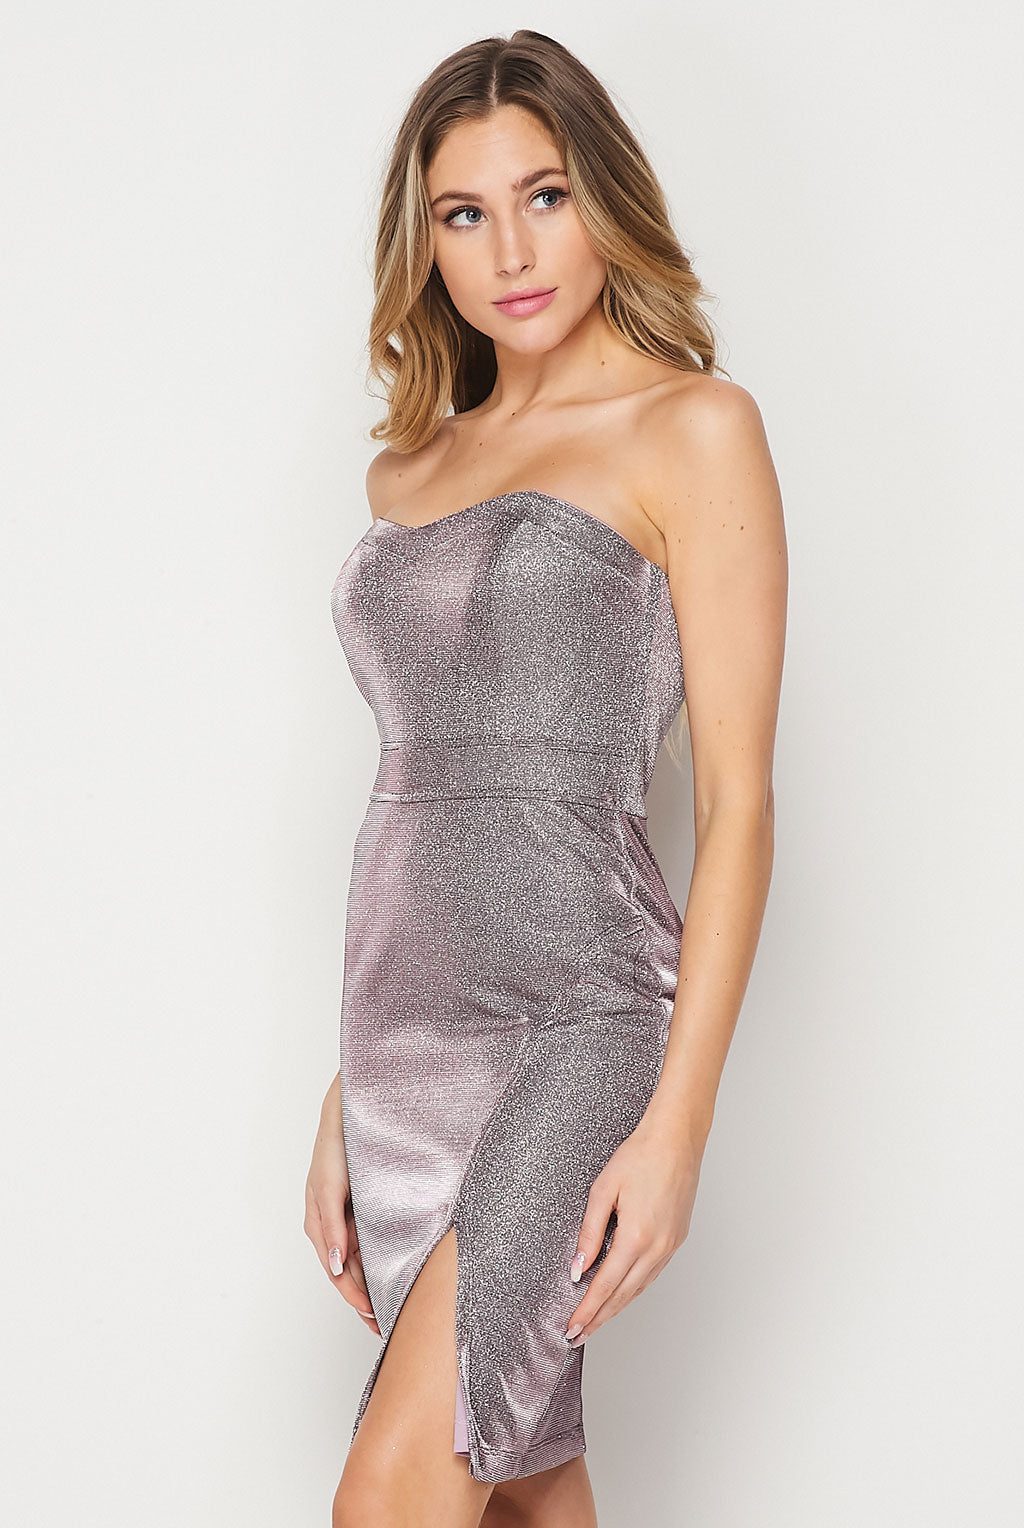 Teeze Me | Strapless Front Slit Glitter Fitted Dress | Lilac/Silver